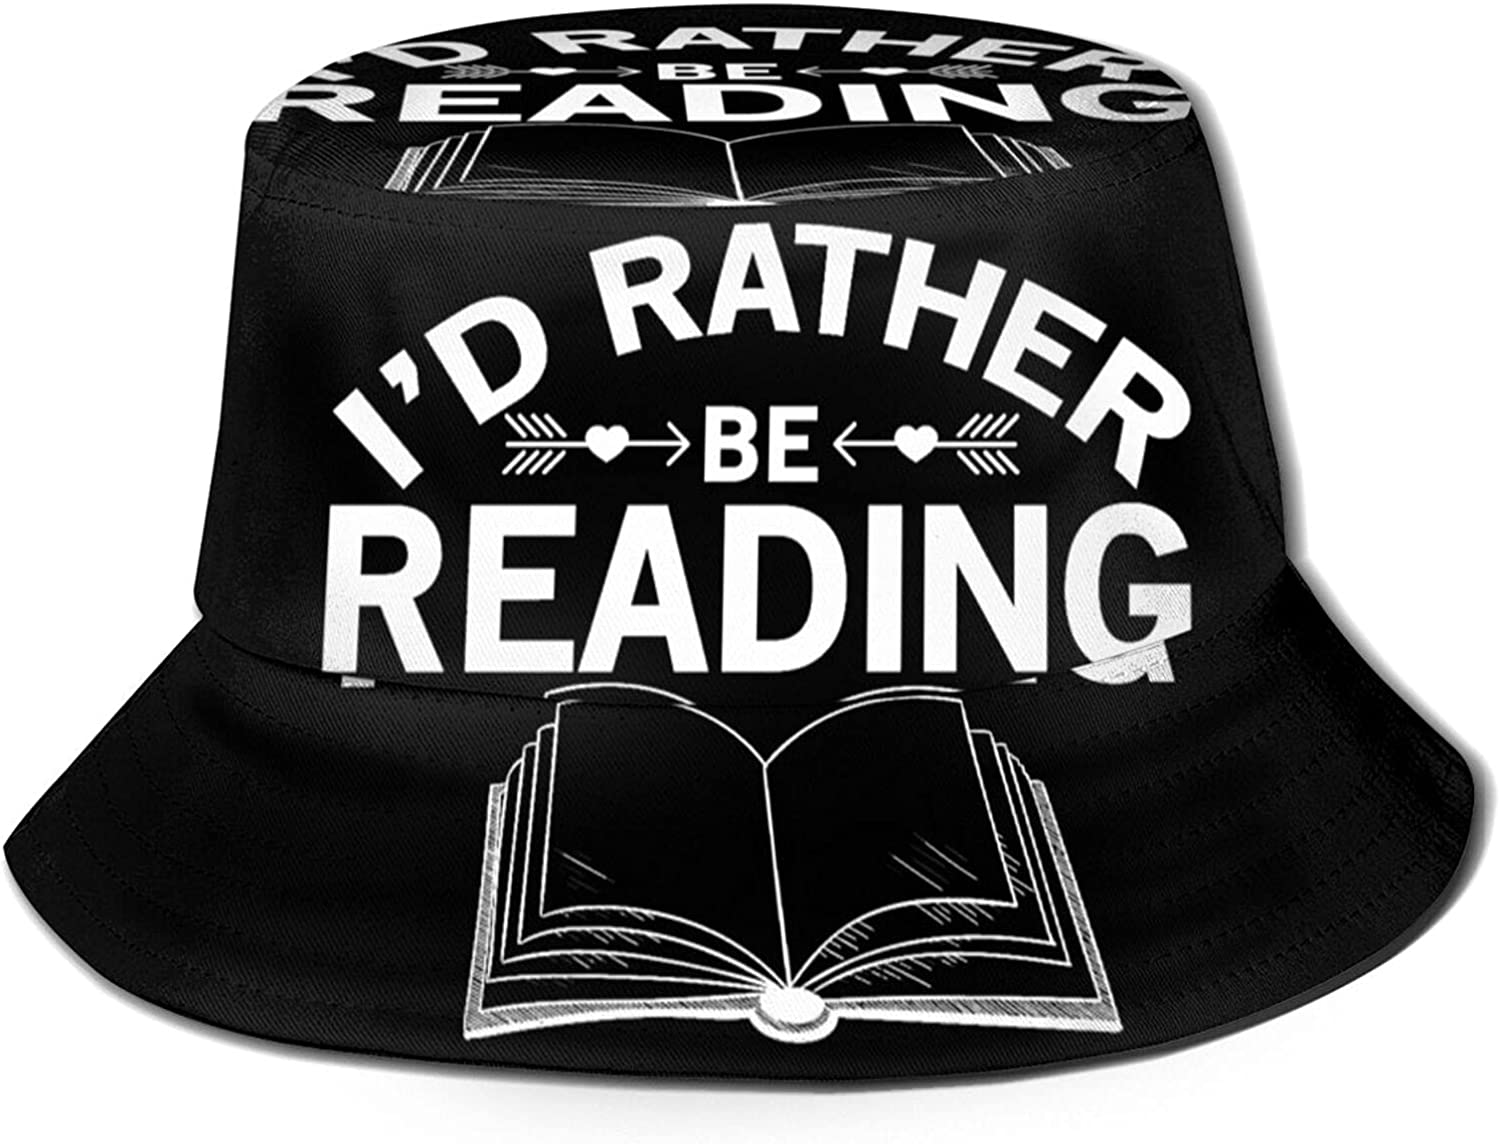 I'd Rather Be Reading Bucket Unisex Packable Hat Sun New item Rapid rise Summer